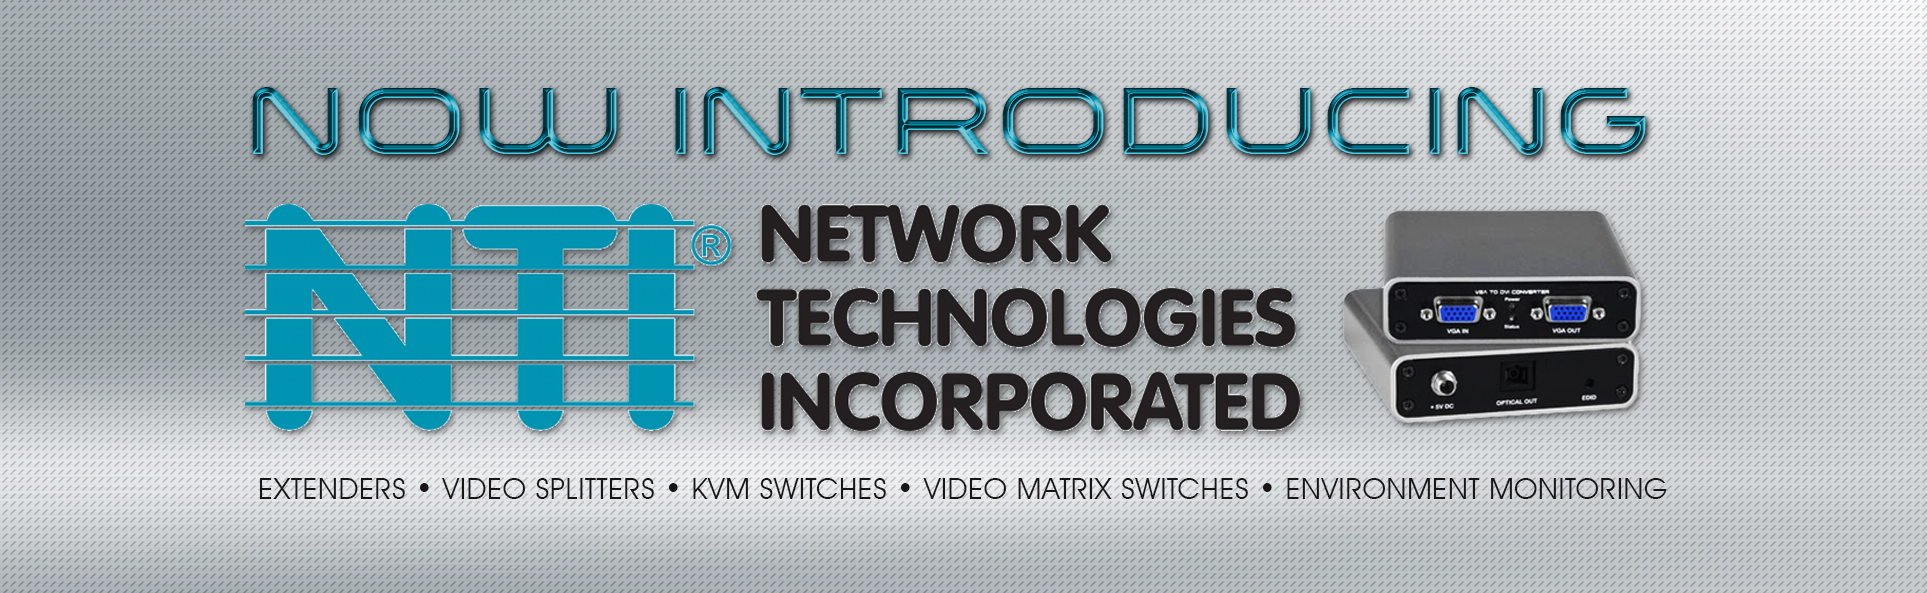 Introducing NTI Products